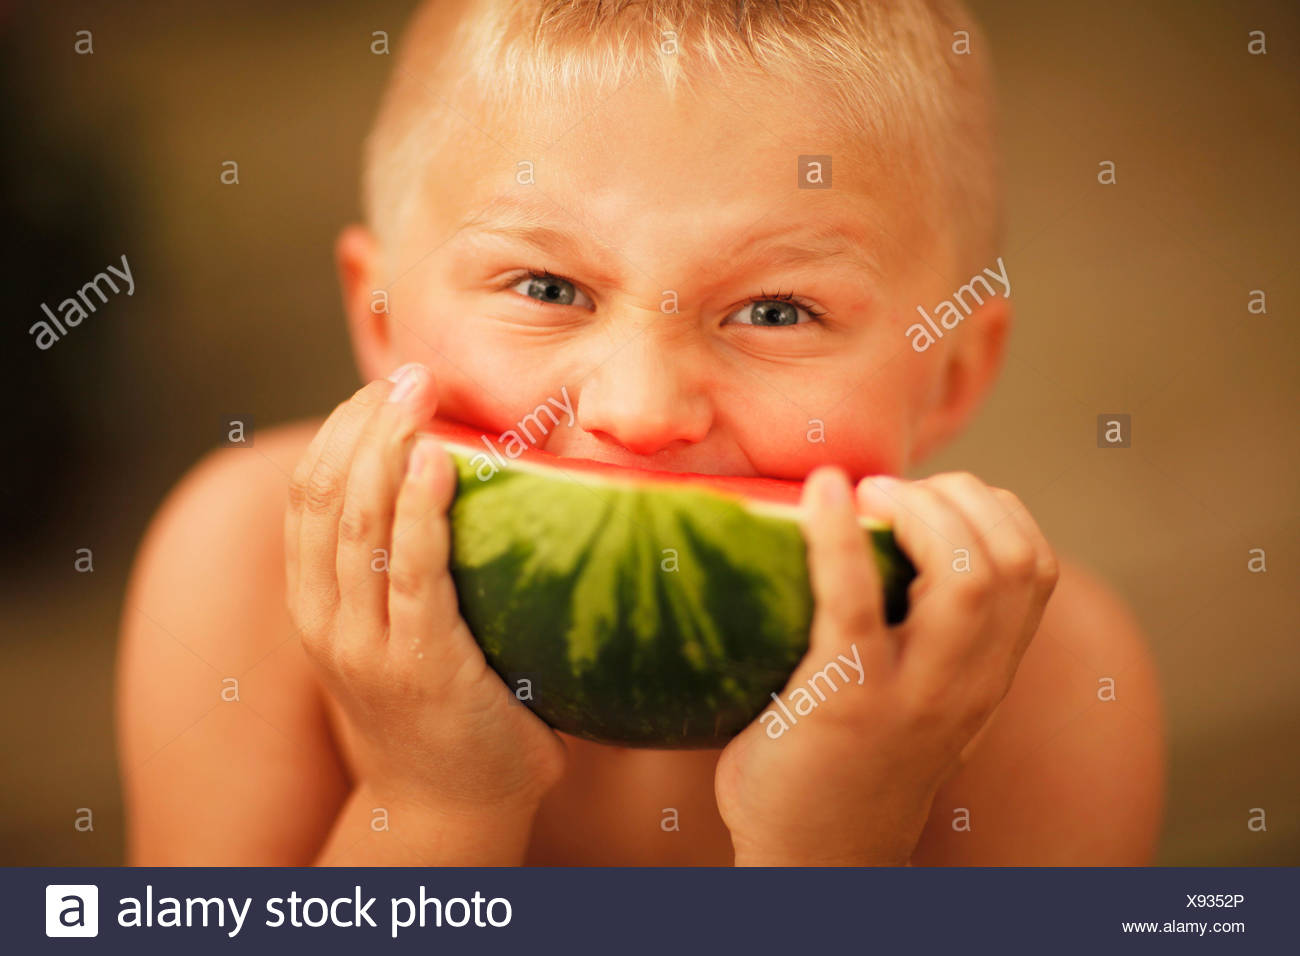 Boy Eating A Slice Of Watermelon Stock Photo